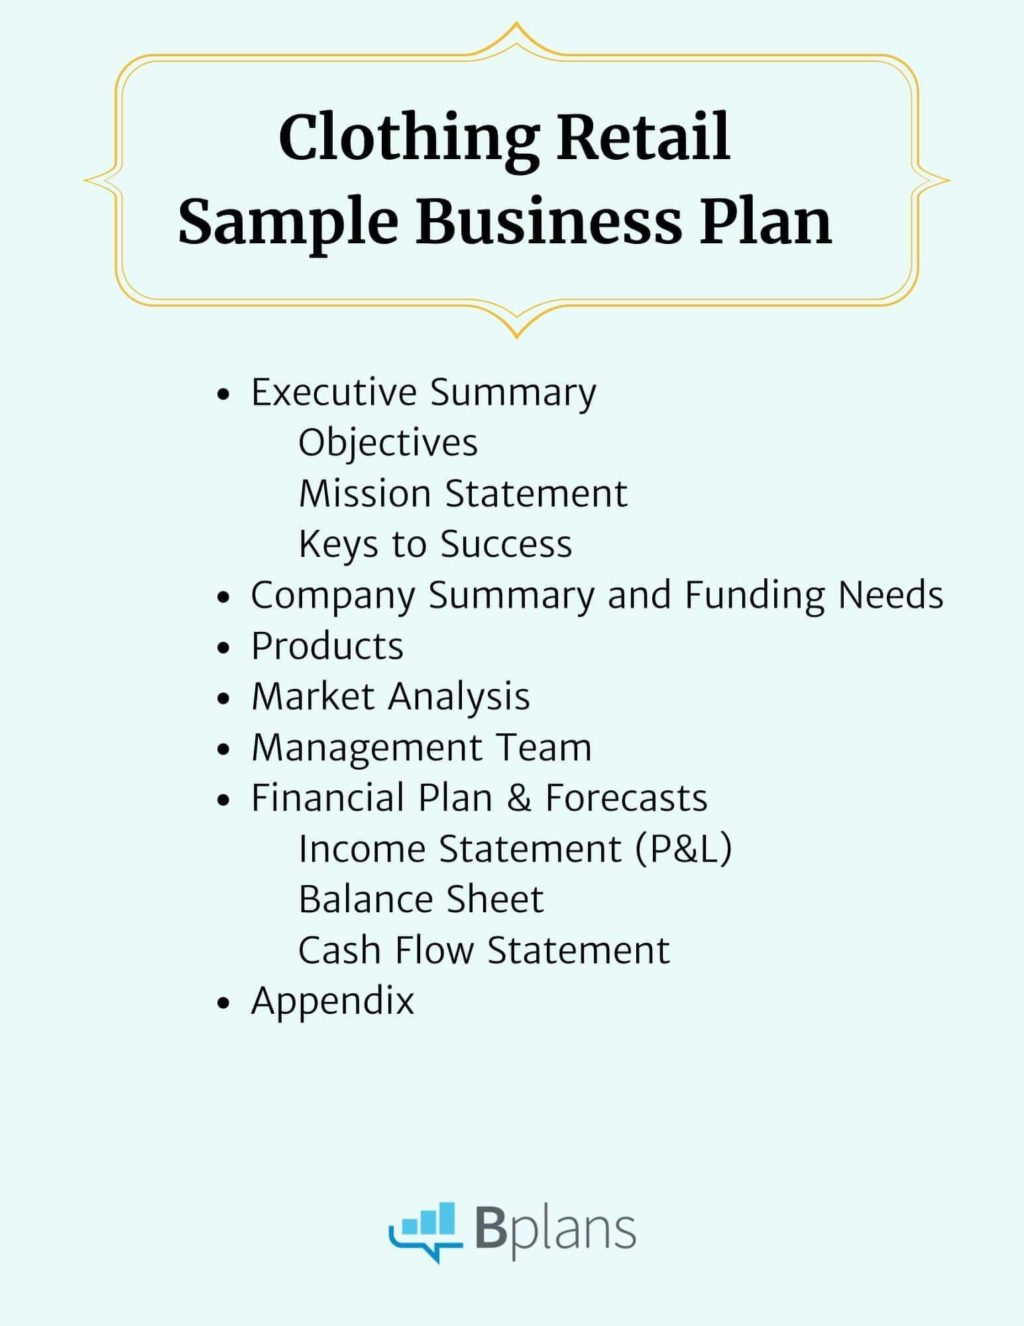 العمل منعش سوء فهم Sample Business Plan For Online Clothing Store Cabuildingbridges Org